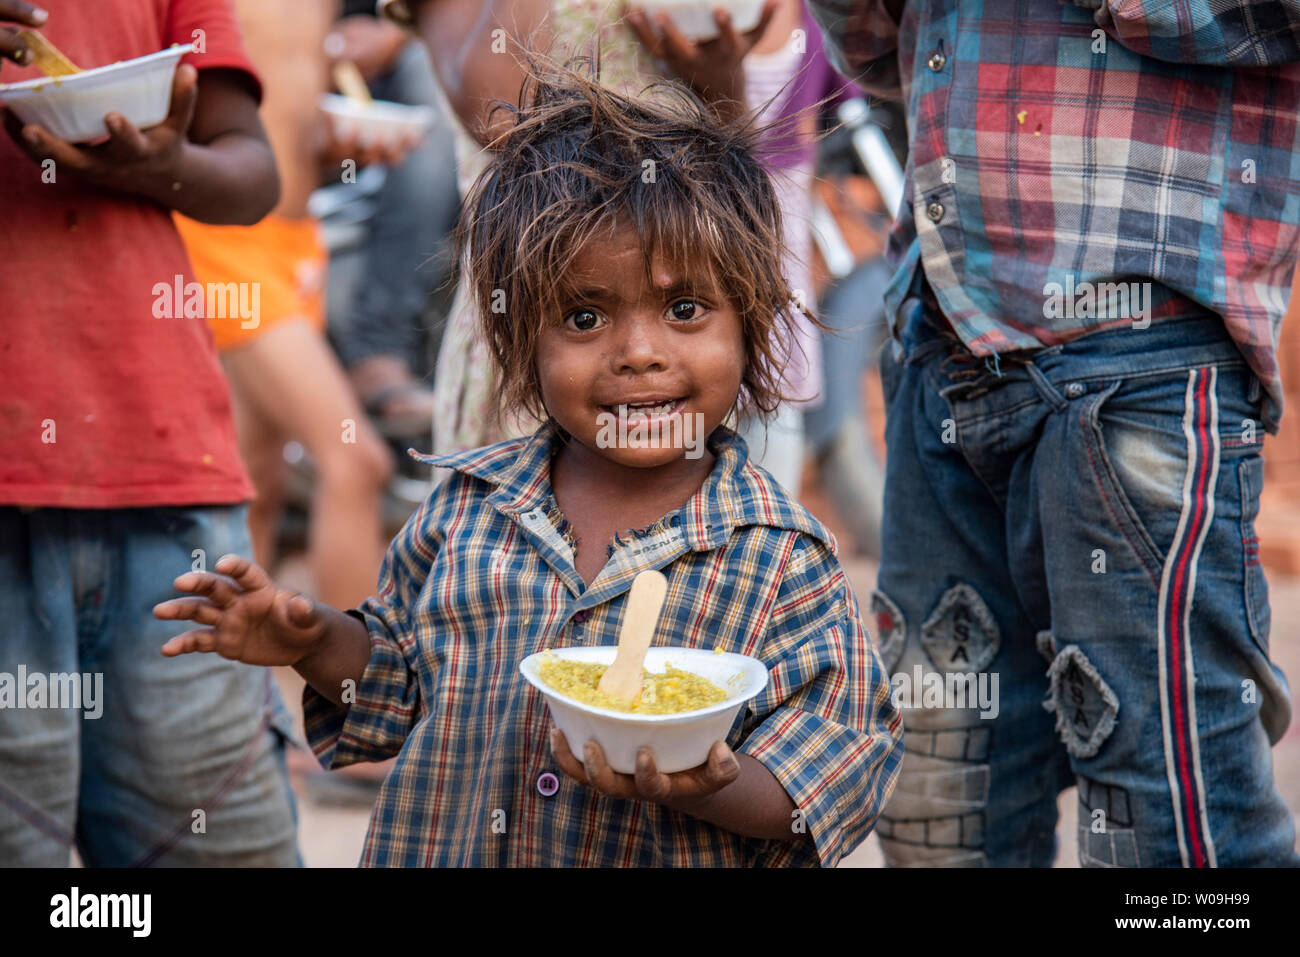 Poor Child High Resolution Stock Photography And Images Alamy